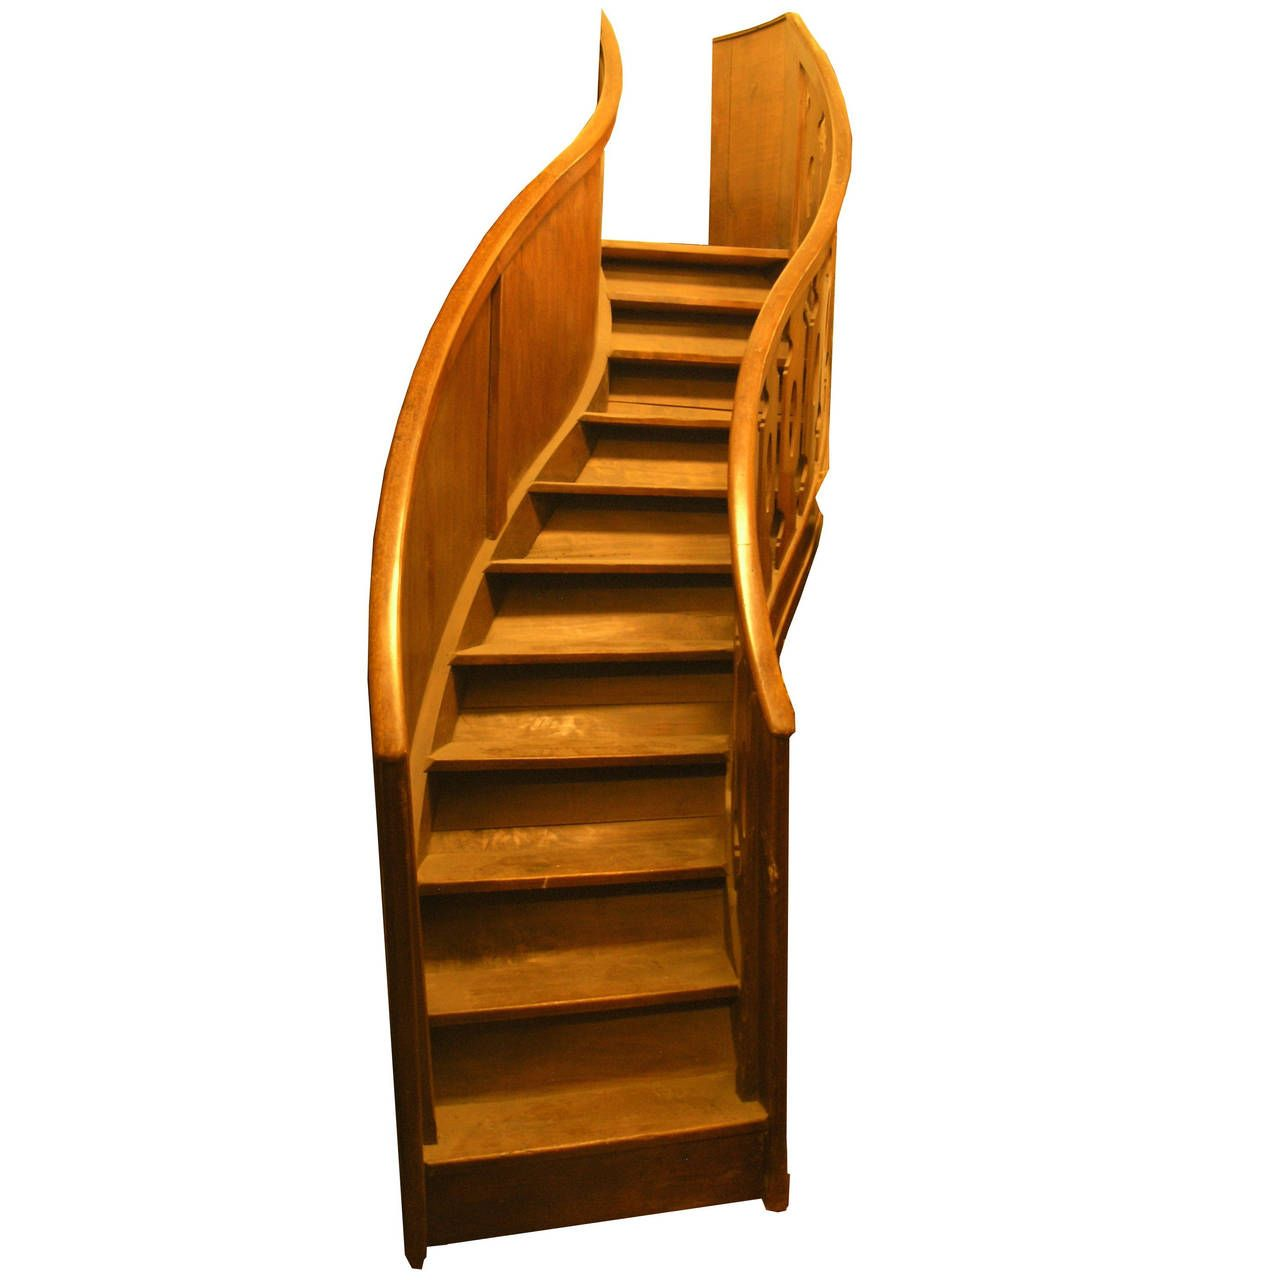 Antique Walnut Staircase   Antiques, Stairs, Modern stairs